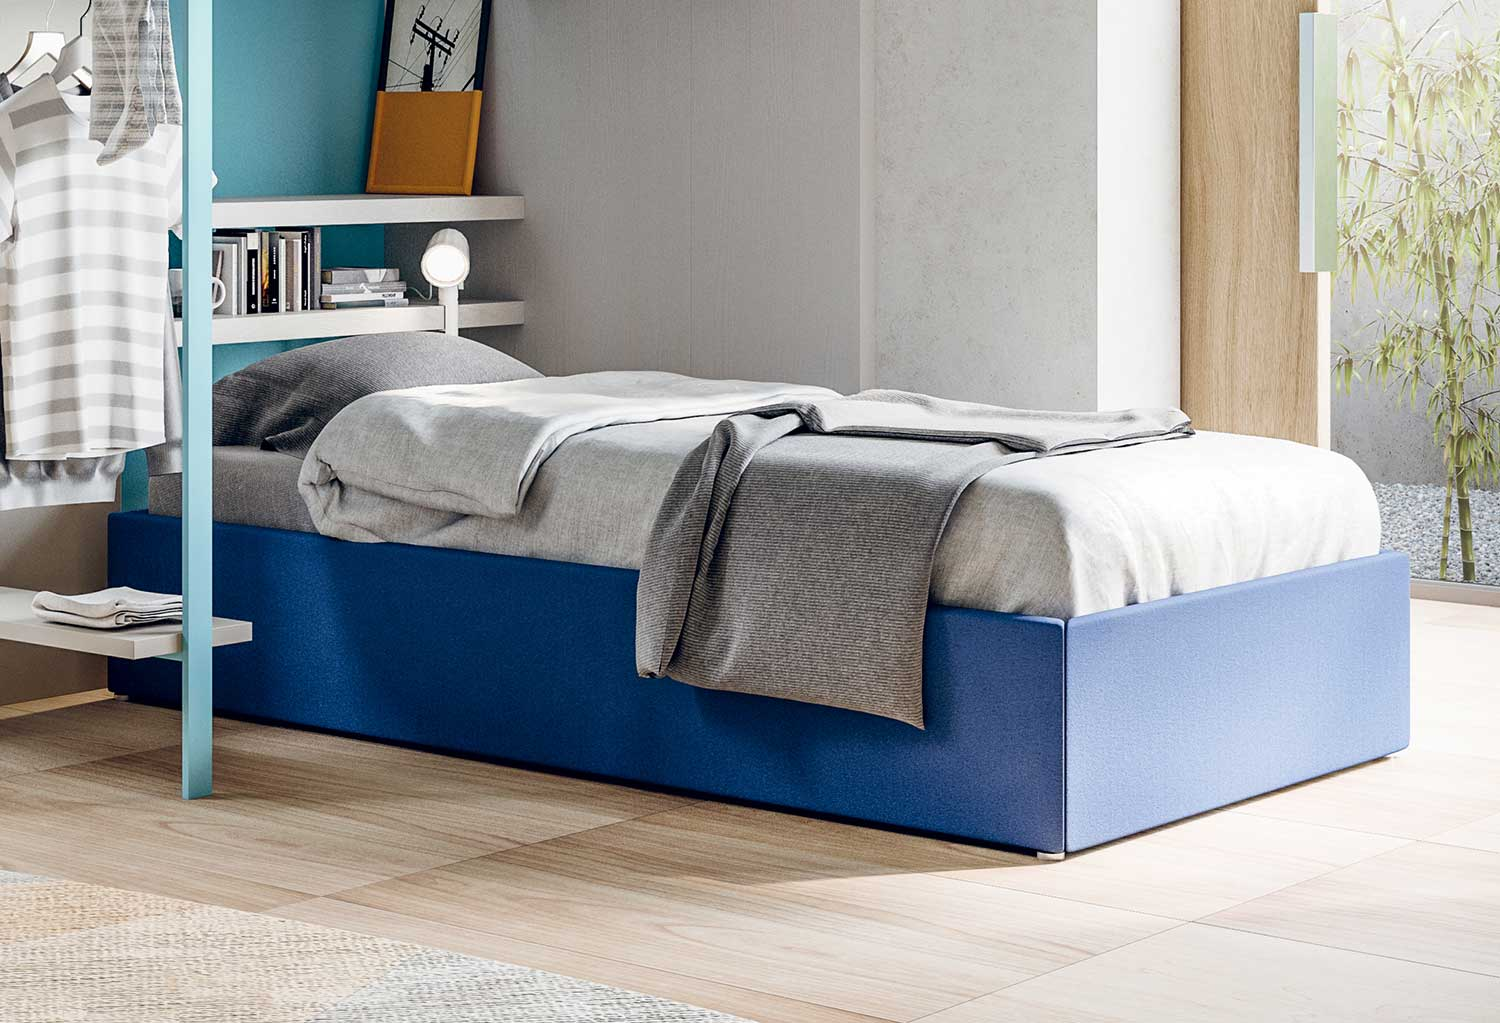 Upholstered single divan bed with storage Smart